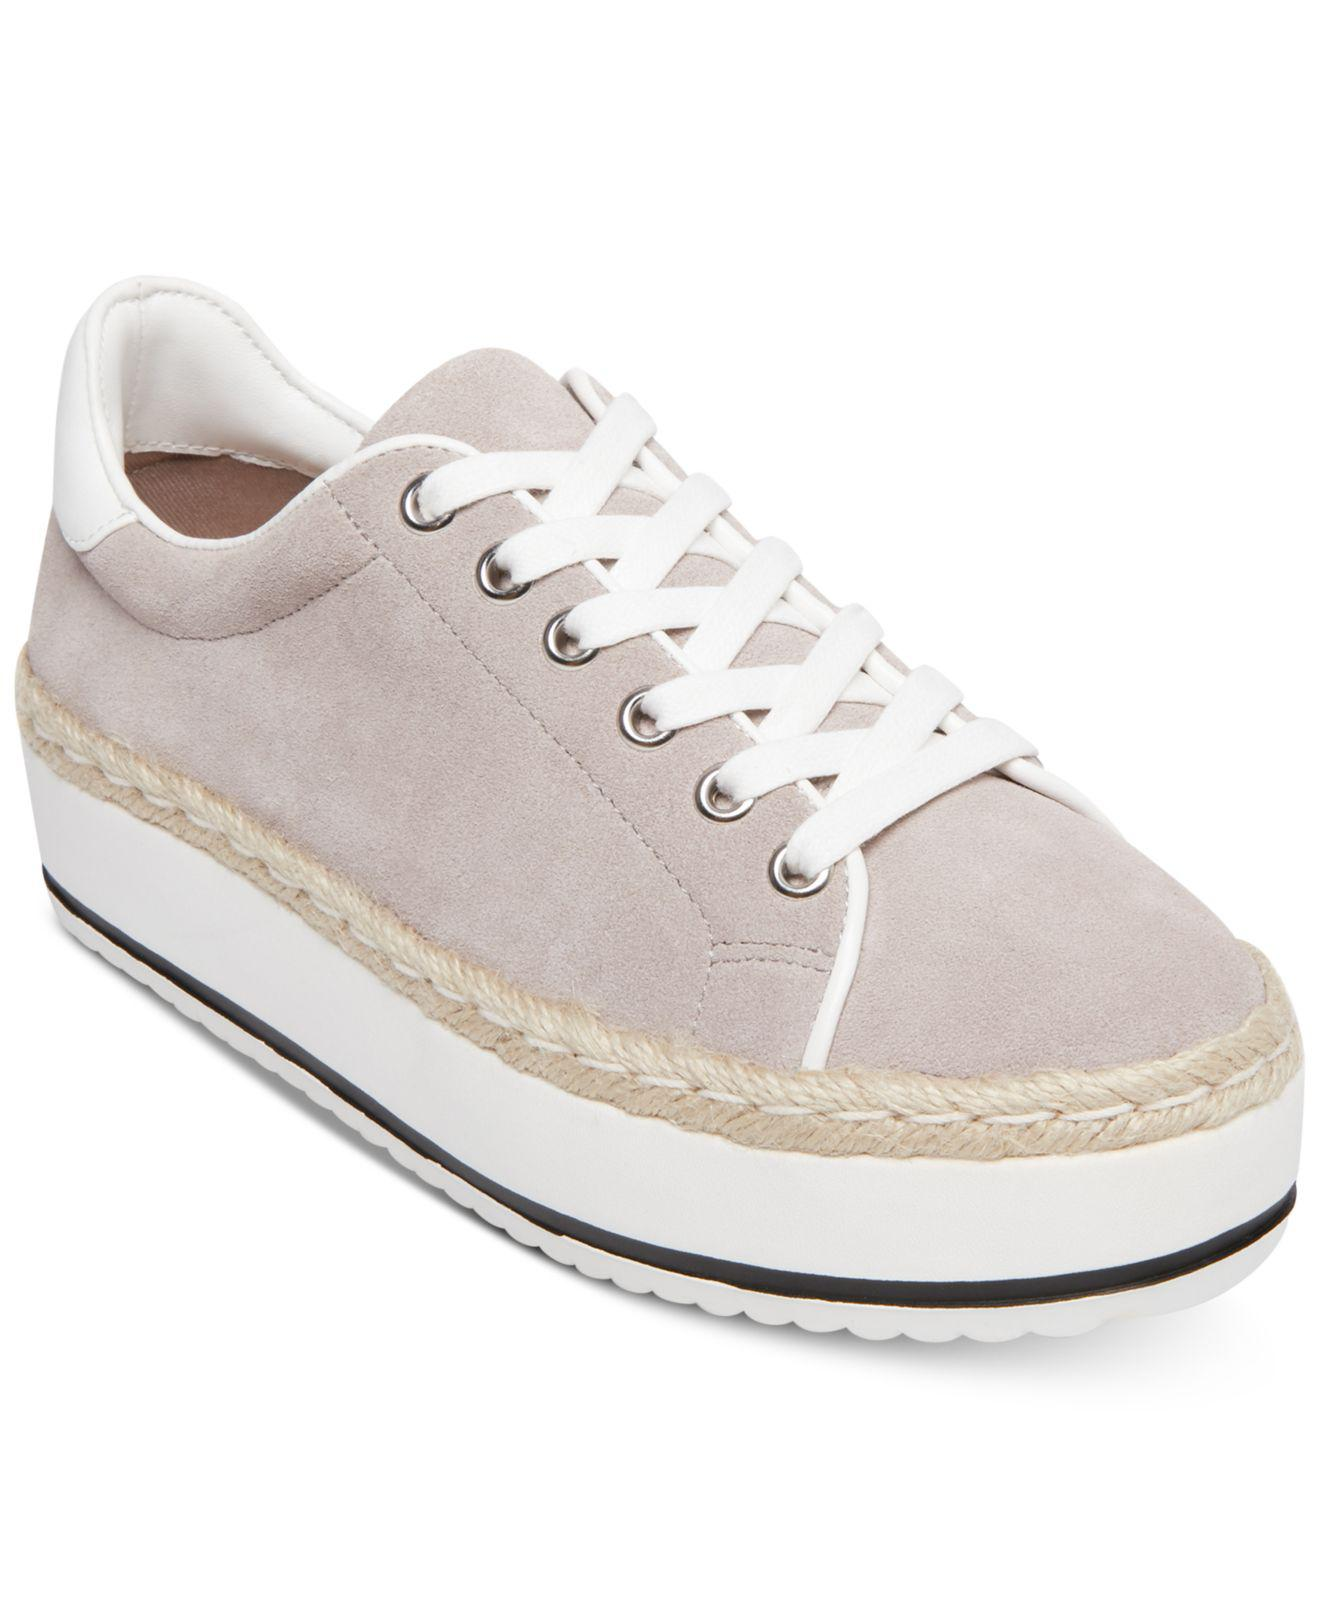 0d4efad5f46 Lyst - Steve Madden Rule Lace-up Espadrille Sneakers in Gray - Save 20%